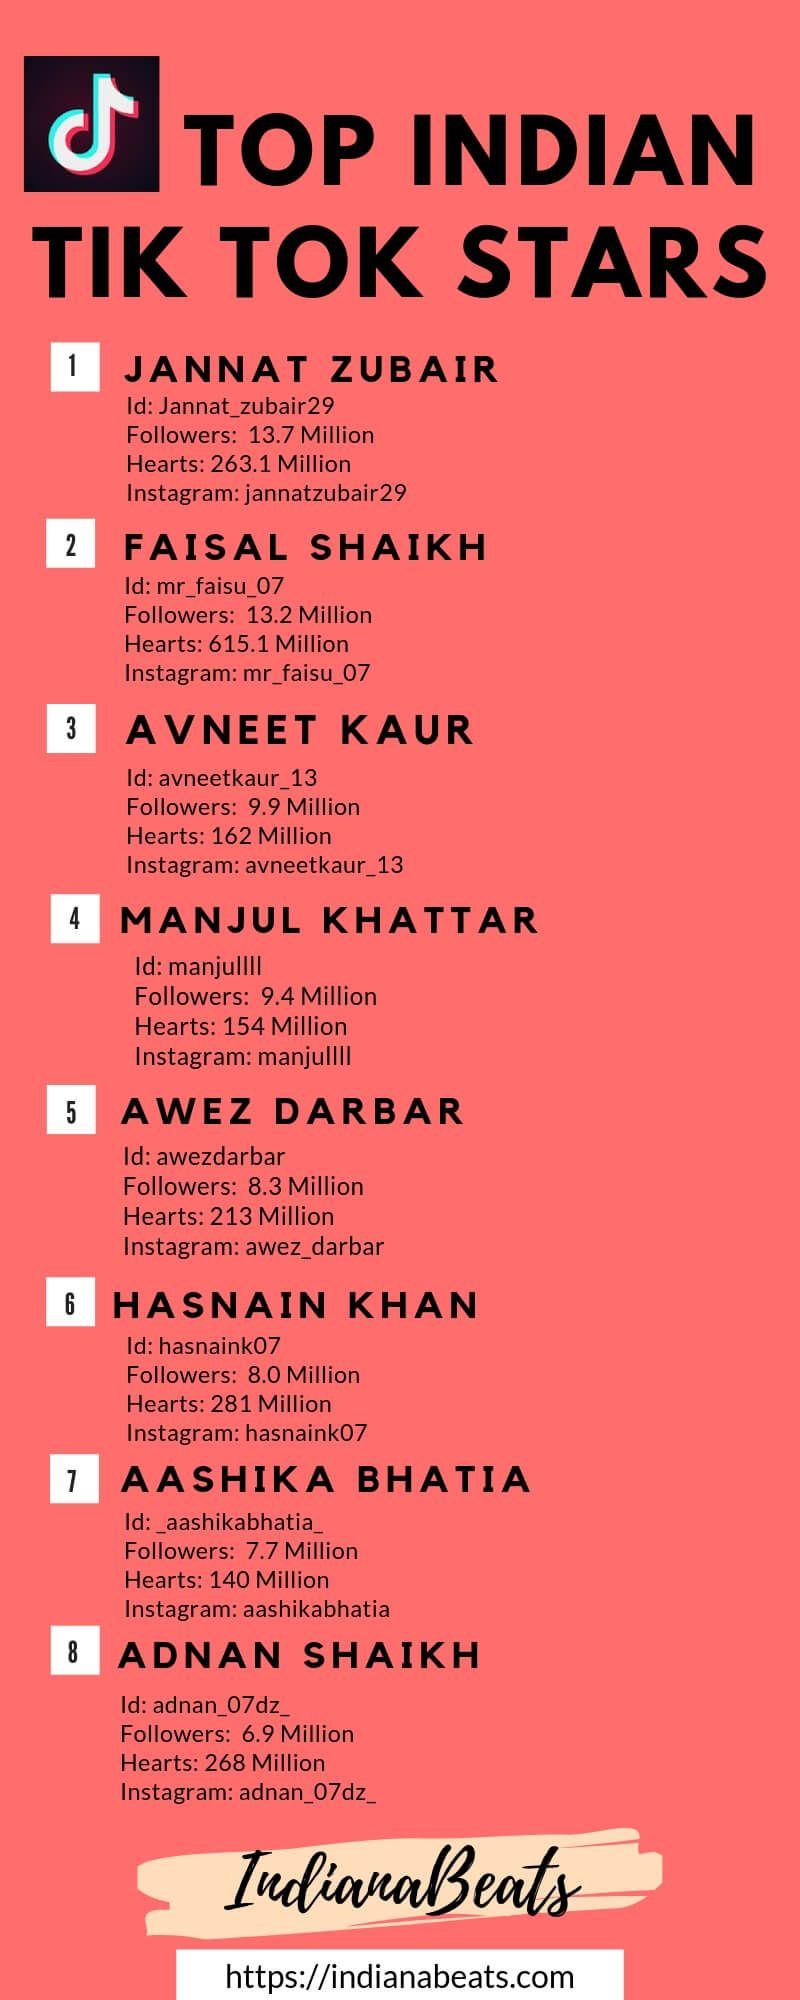 Top Indian TikTok (Musically) Stars and their Stardom 2019 [UPDATED